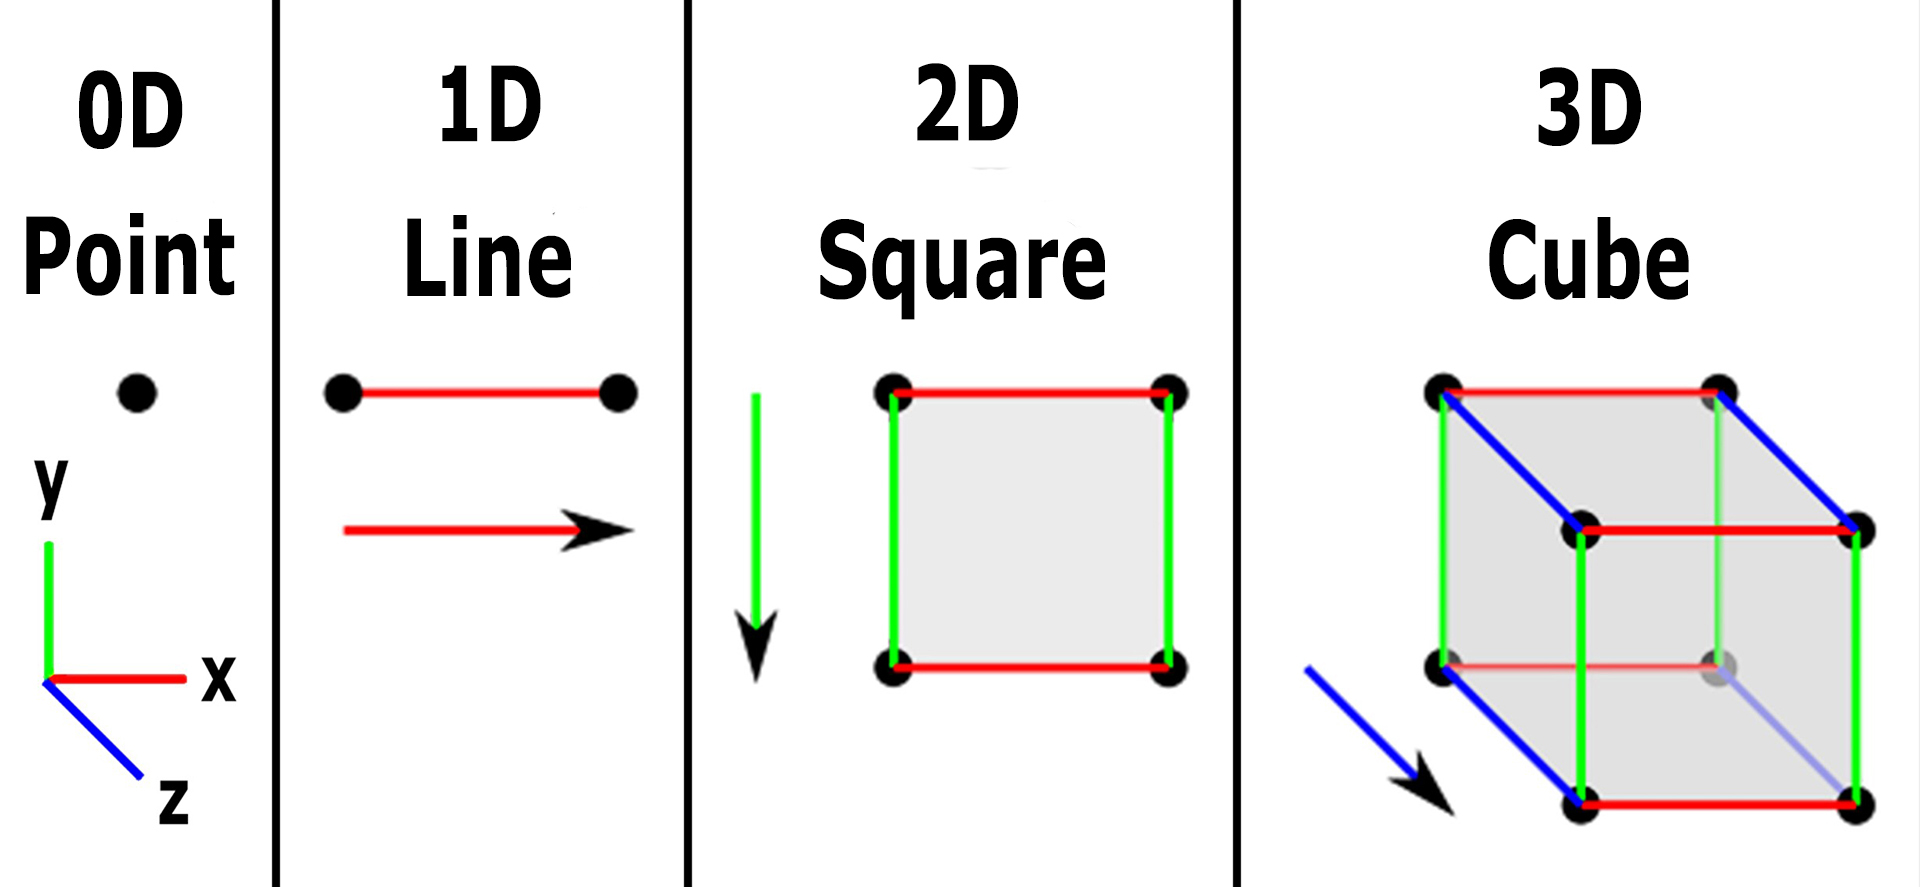 Image showing the first three dimensions for the geometry of fourth dimension and the space-time continuum